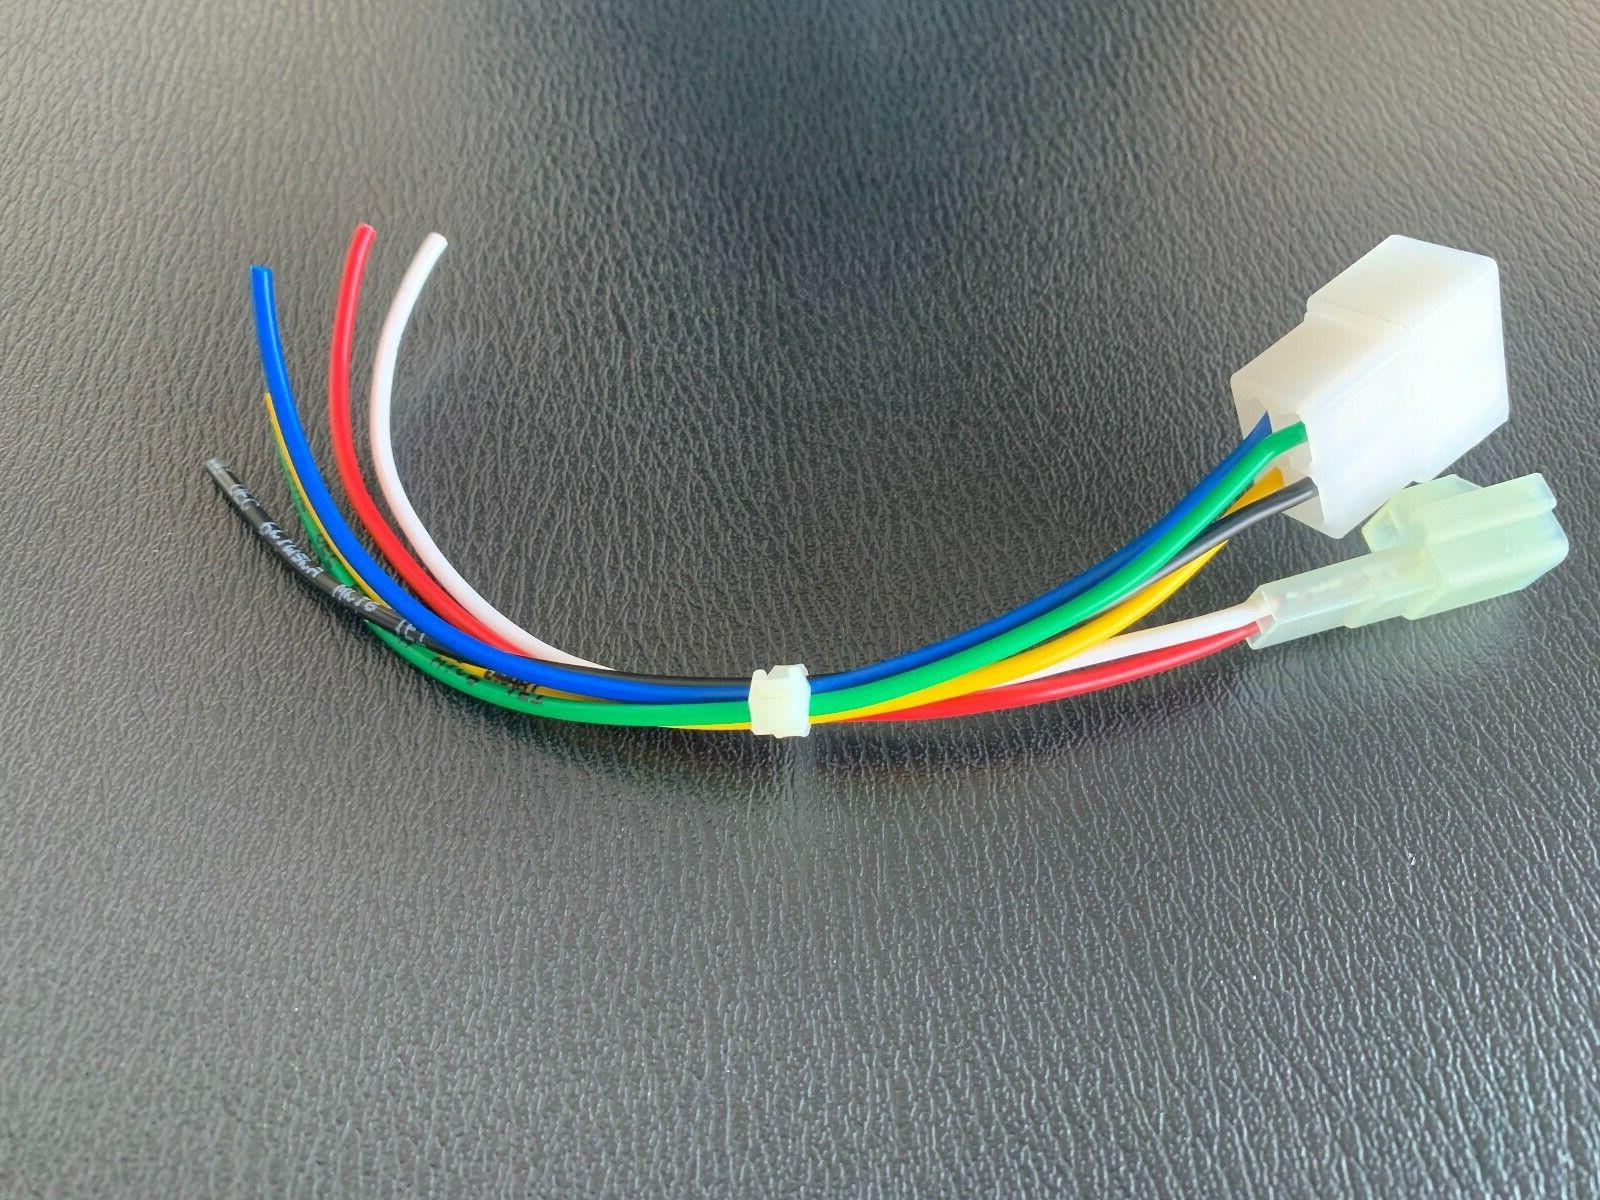 Honda Acty wiring for aftermarket